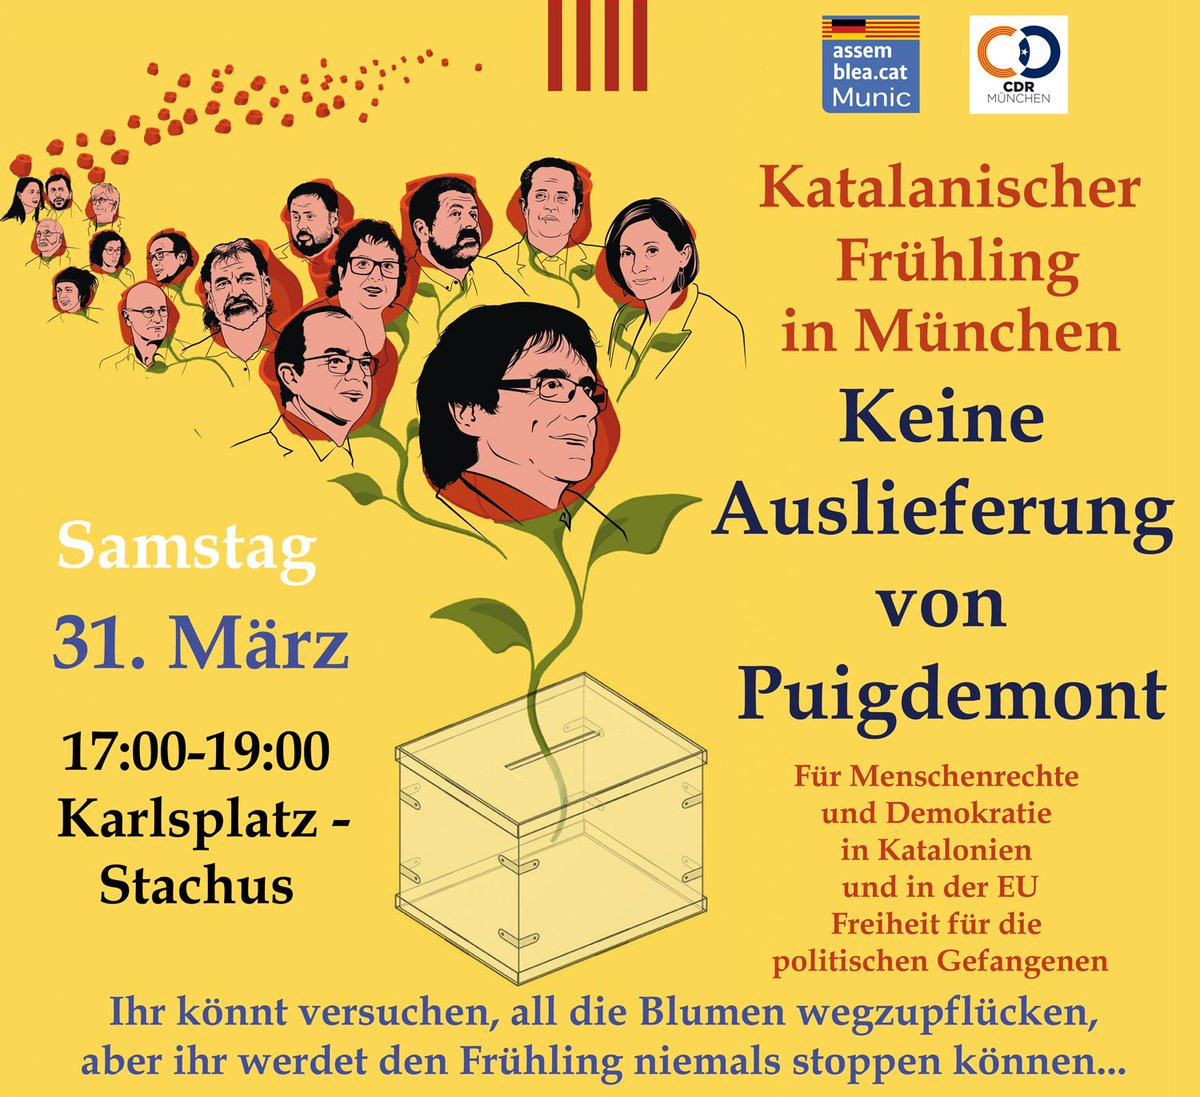 March 31 Munich demonstration against extradition of Puigdemont